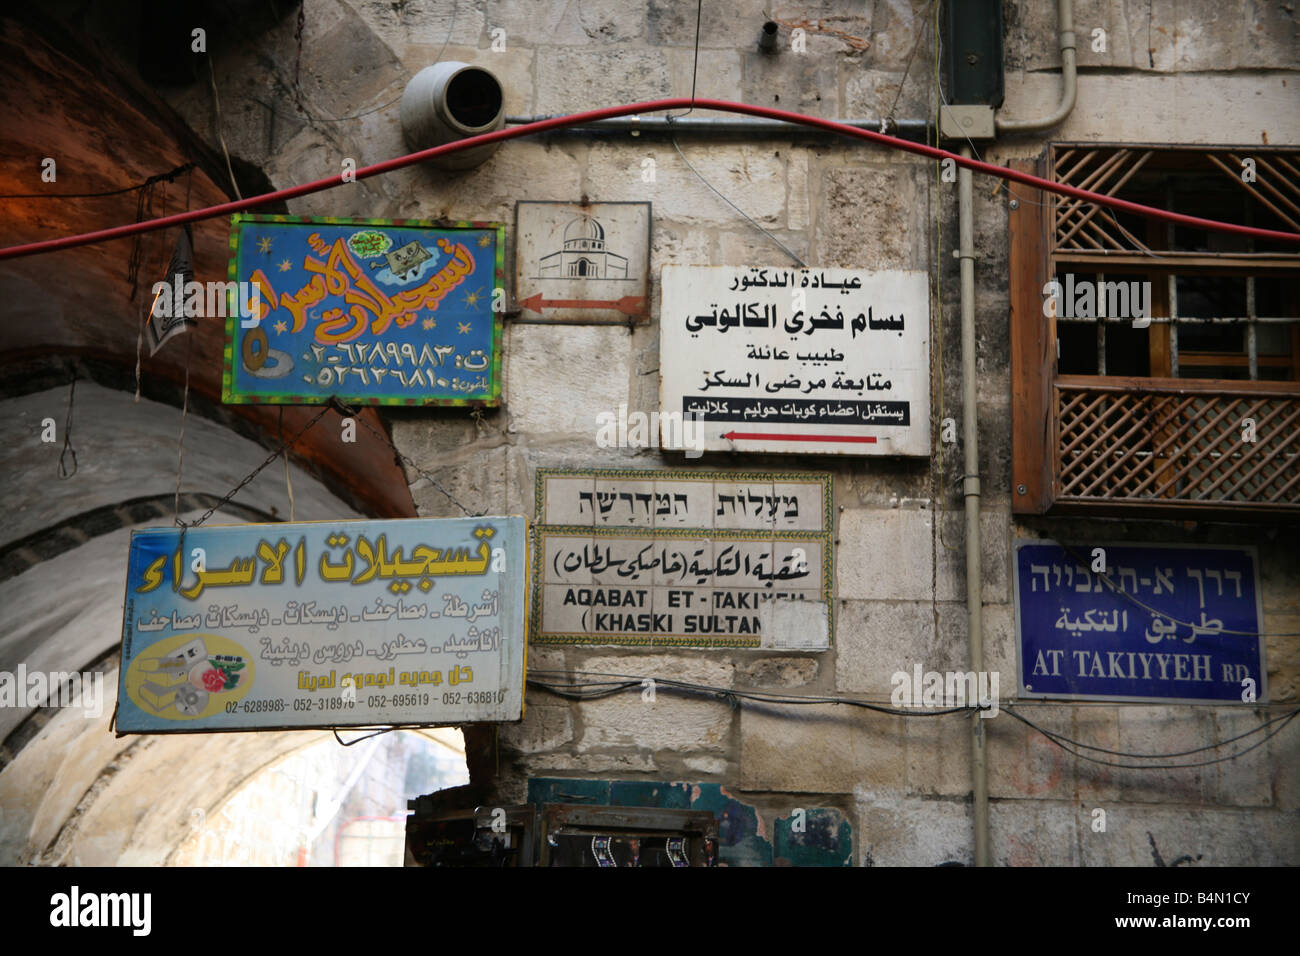 Signs hanging at a market in the old city section of Jerusalem - Stock Image